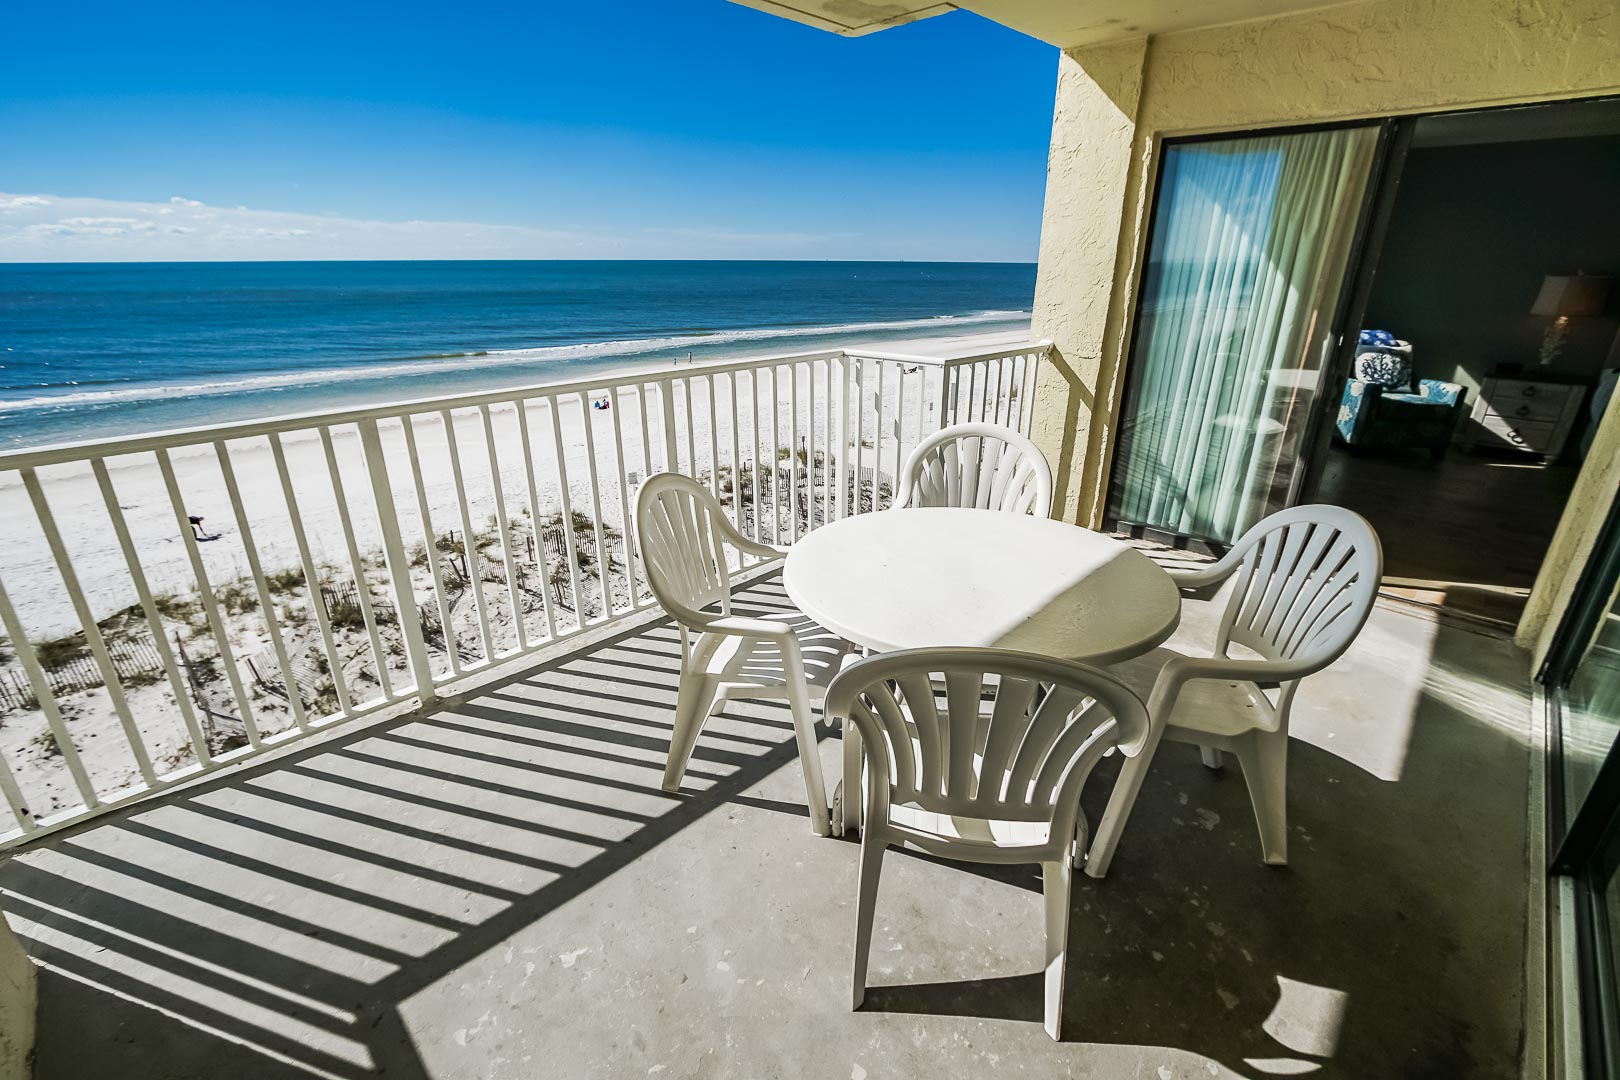 A beautiful view from the balcony at VRI's Shoreline Towers in Gulf Shores, Alabama.